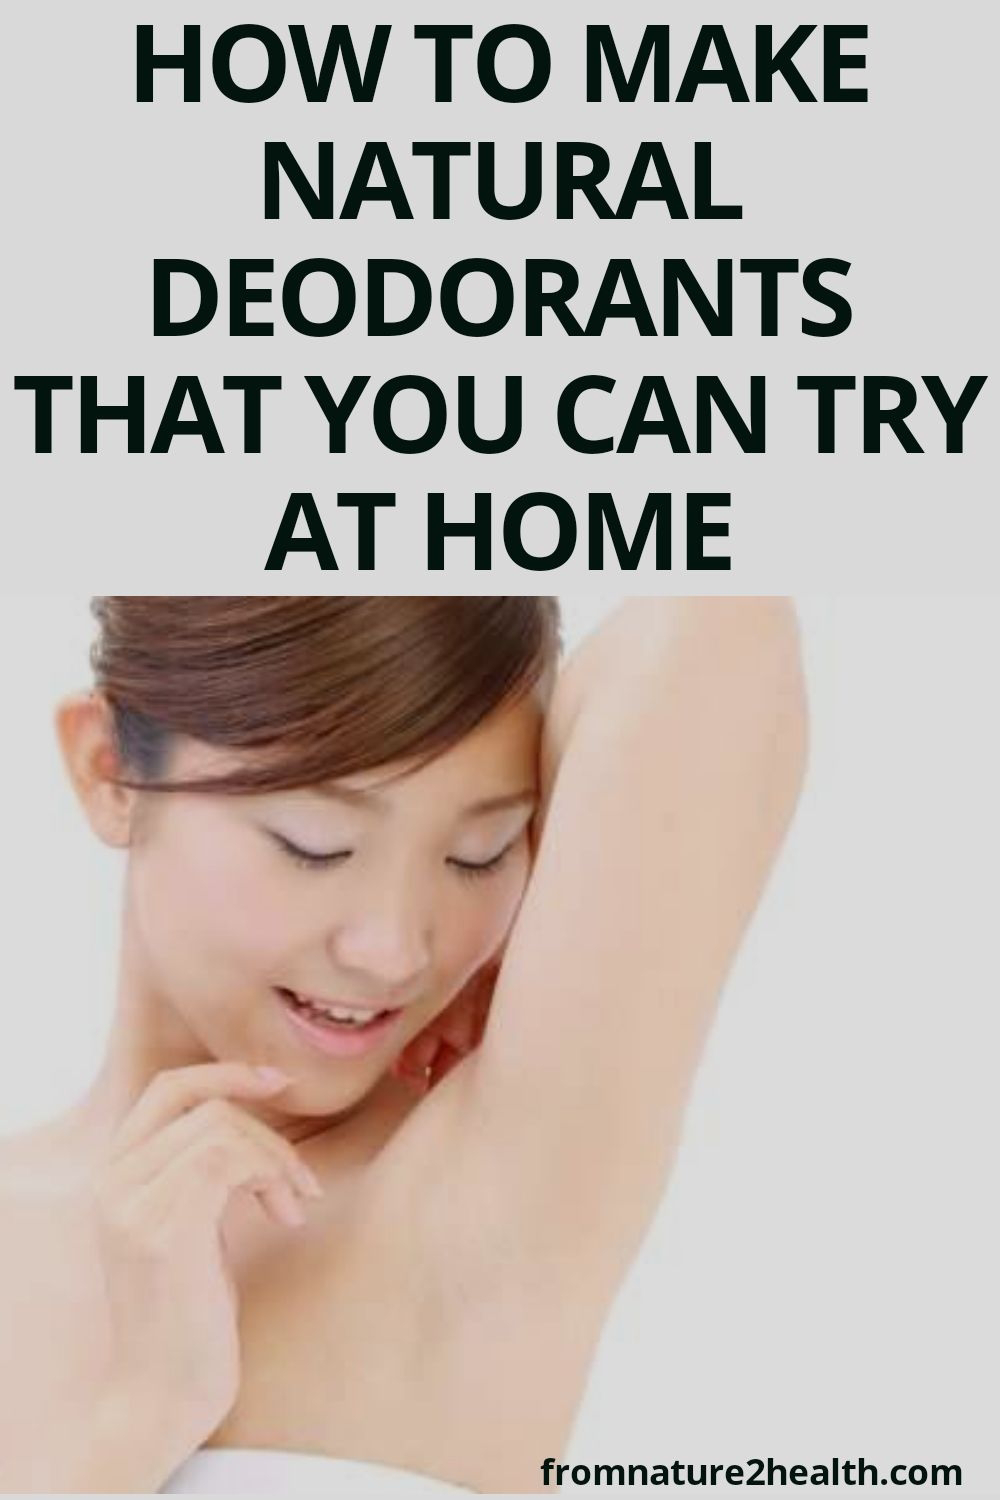 How to Make Natural Deodorants That You Can Try at Home